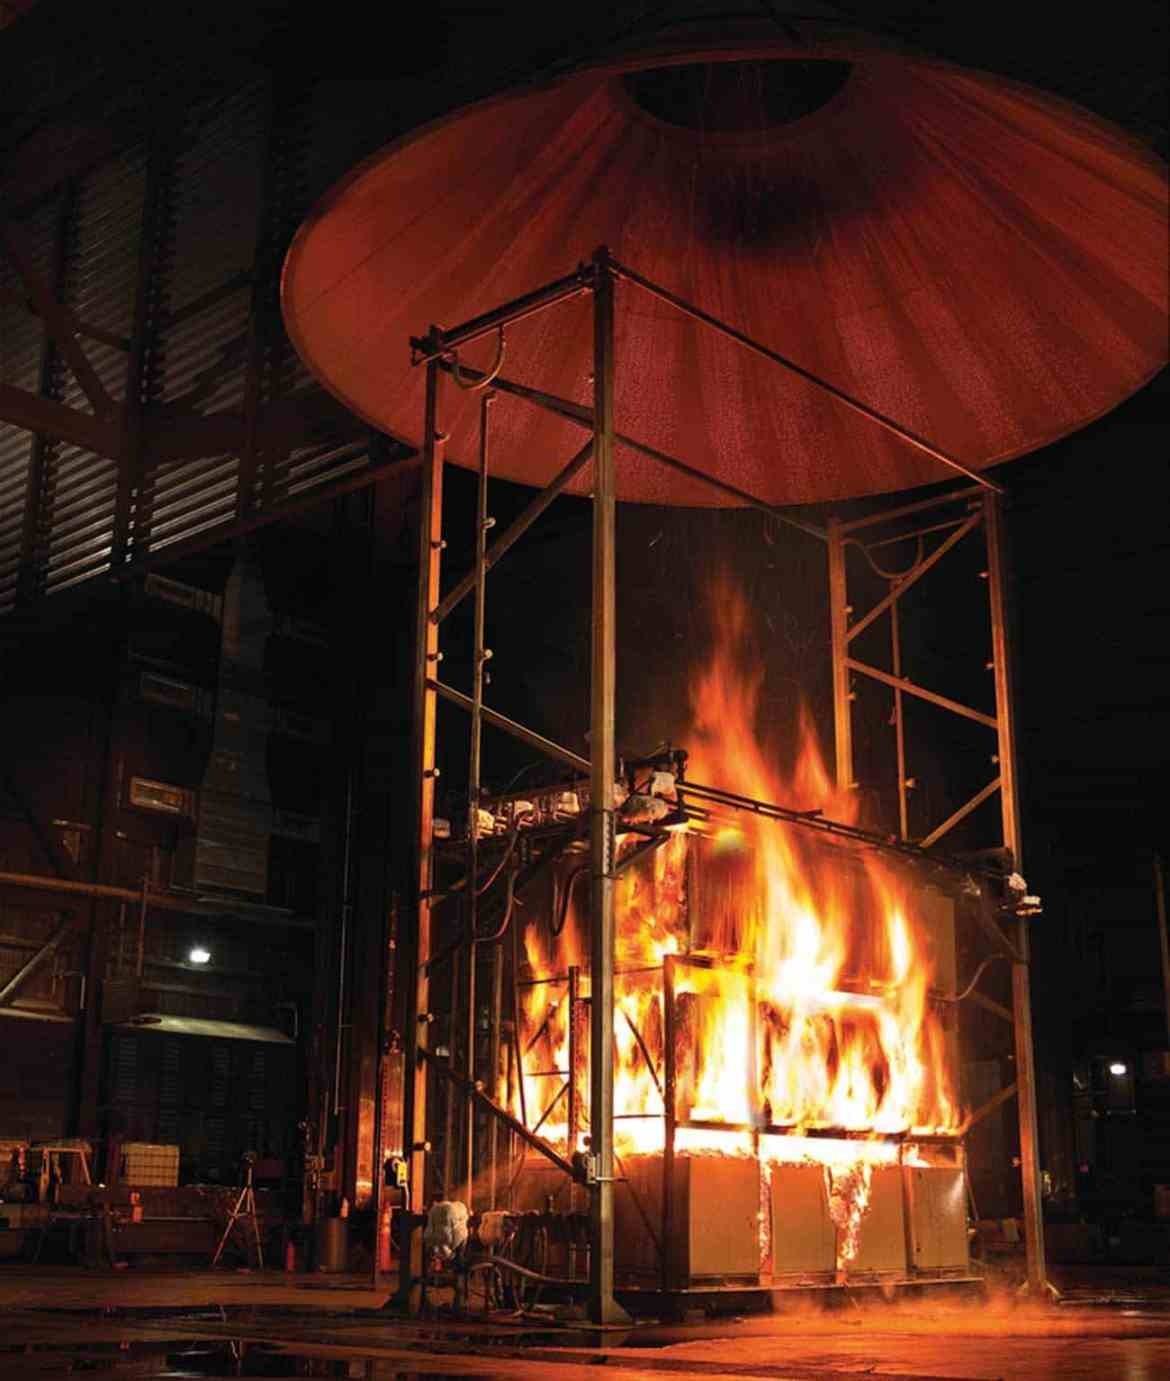 Figure 4. Commodity classifications can be evaluated through fire tests such as this one performed by FM Global that measures heat release rate from a burning array.